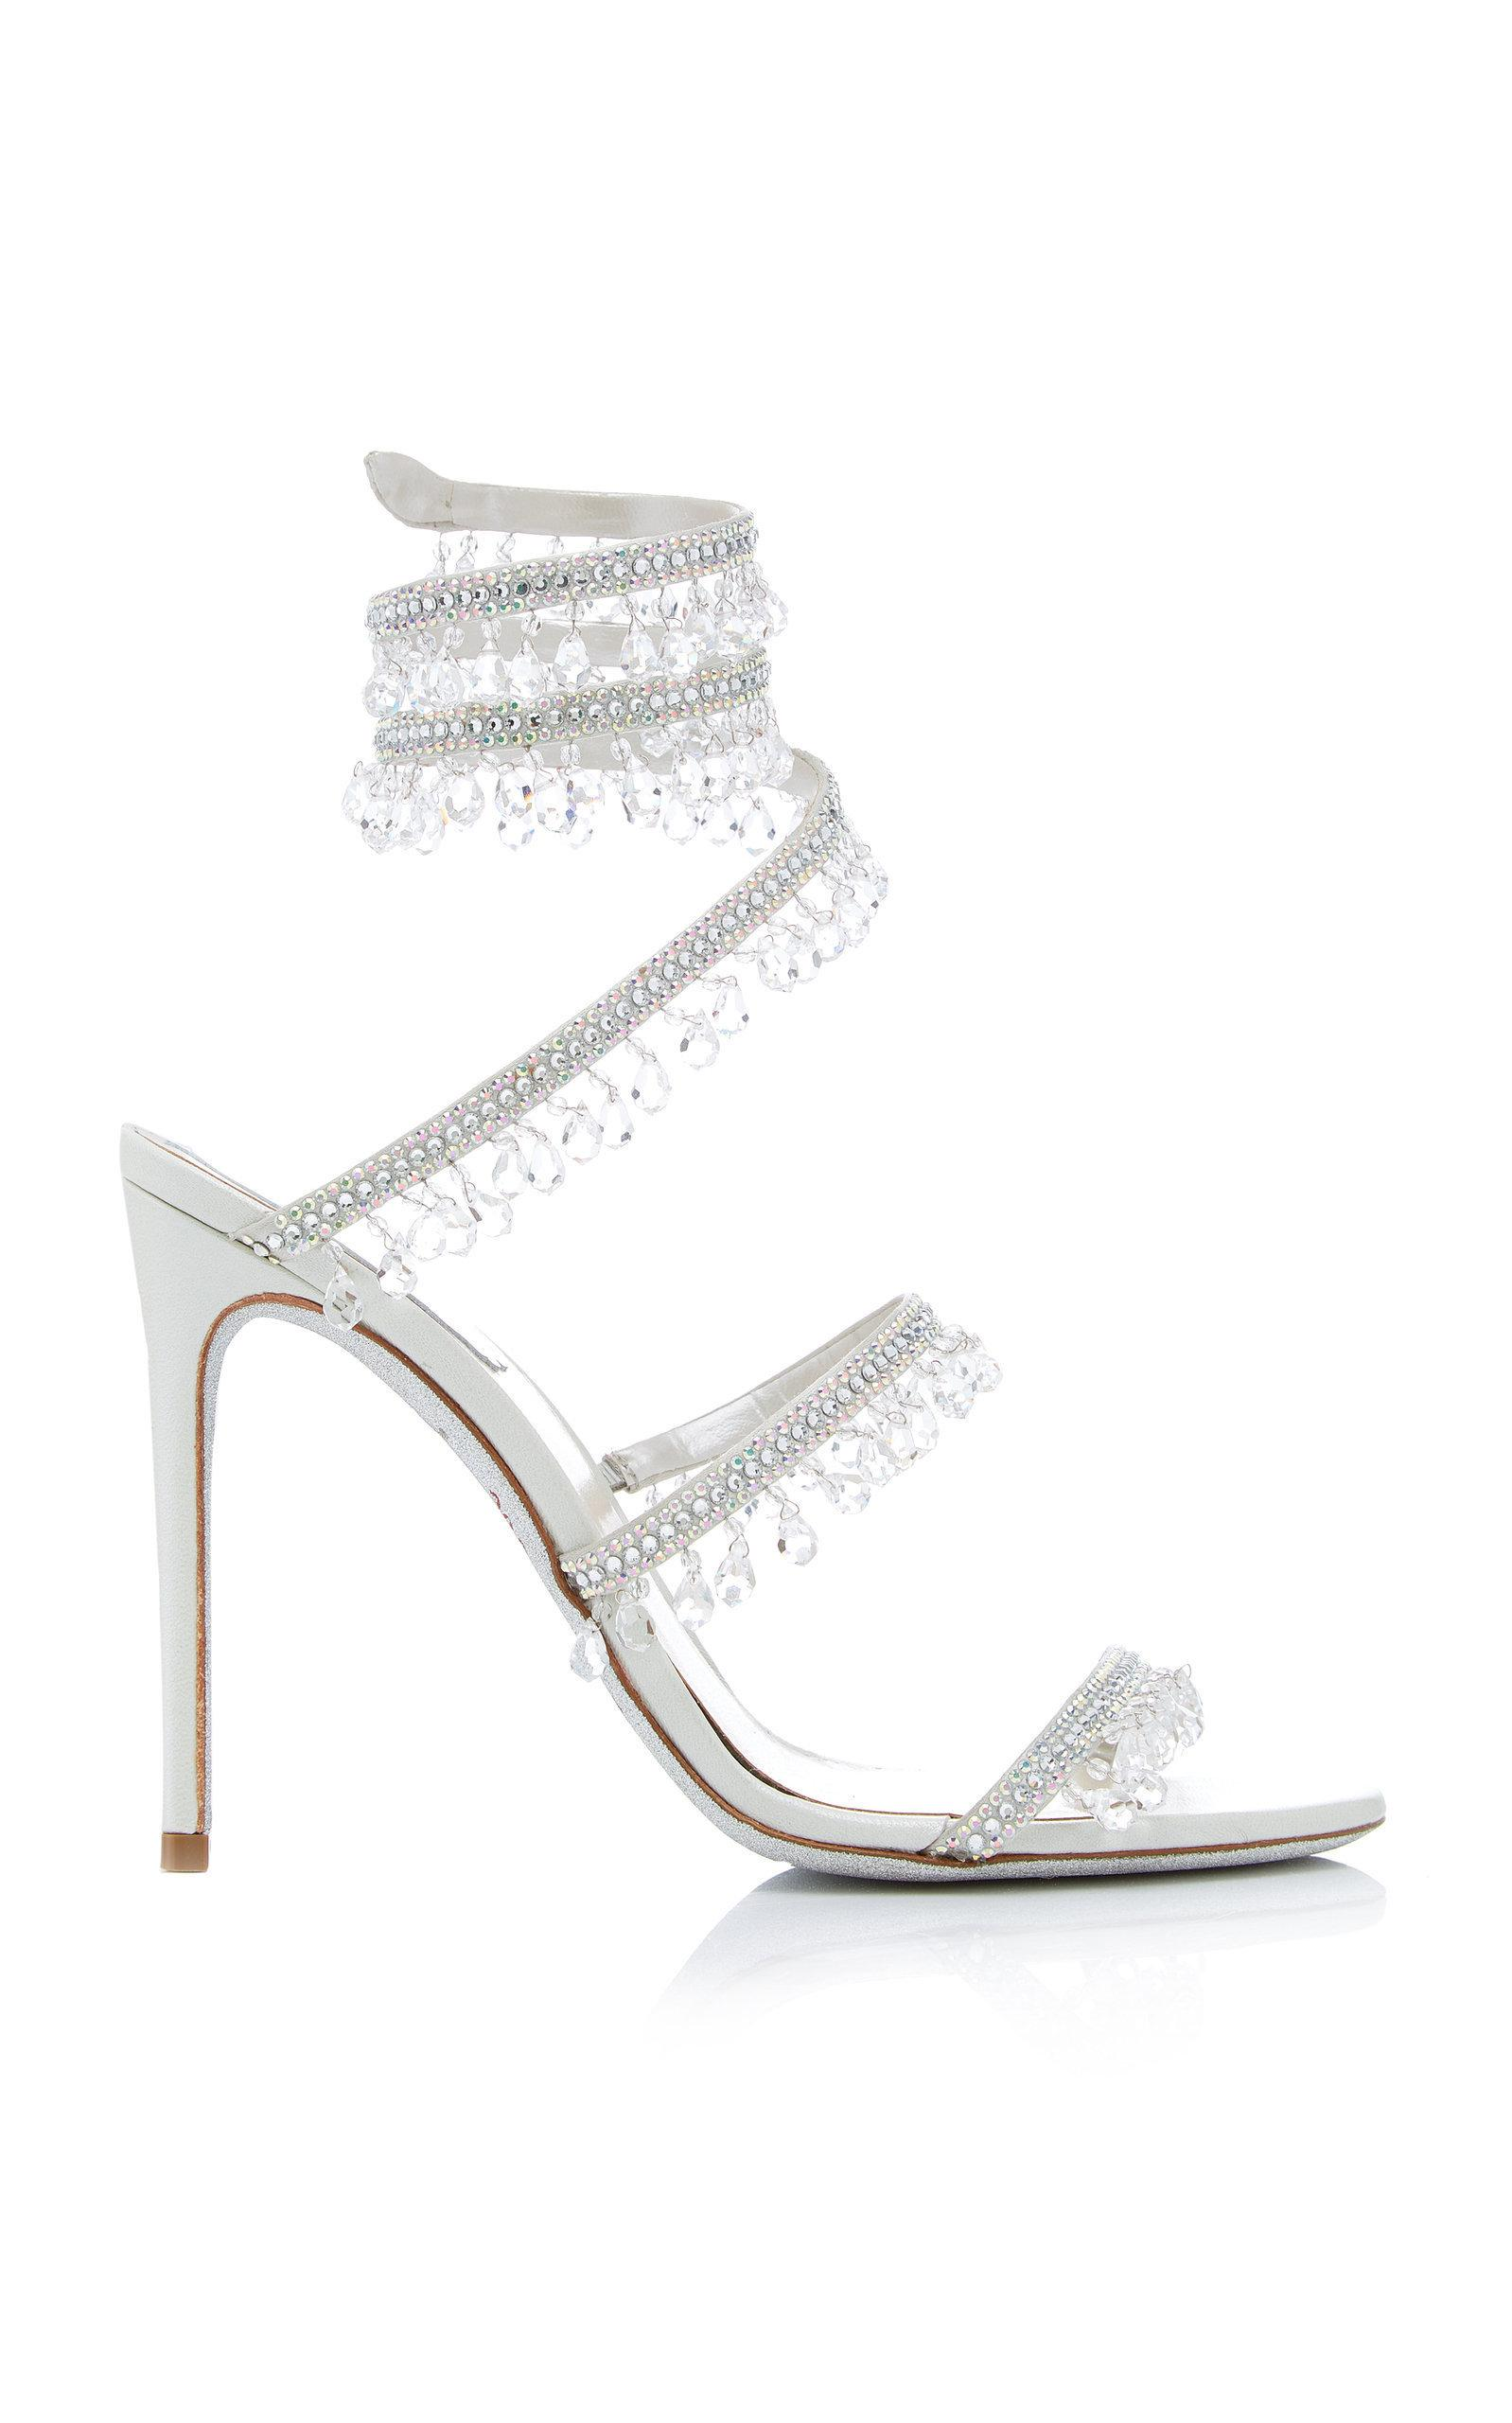 4b8a04978fa8ca RenÉ Caovilla Exclusive Crystal-Embellished Sandal In White